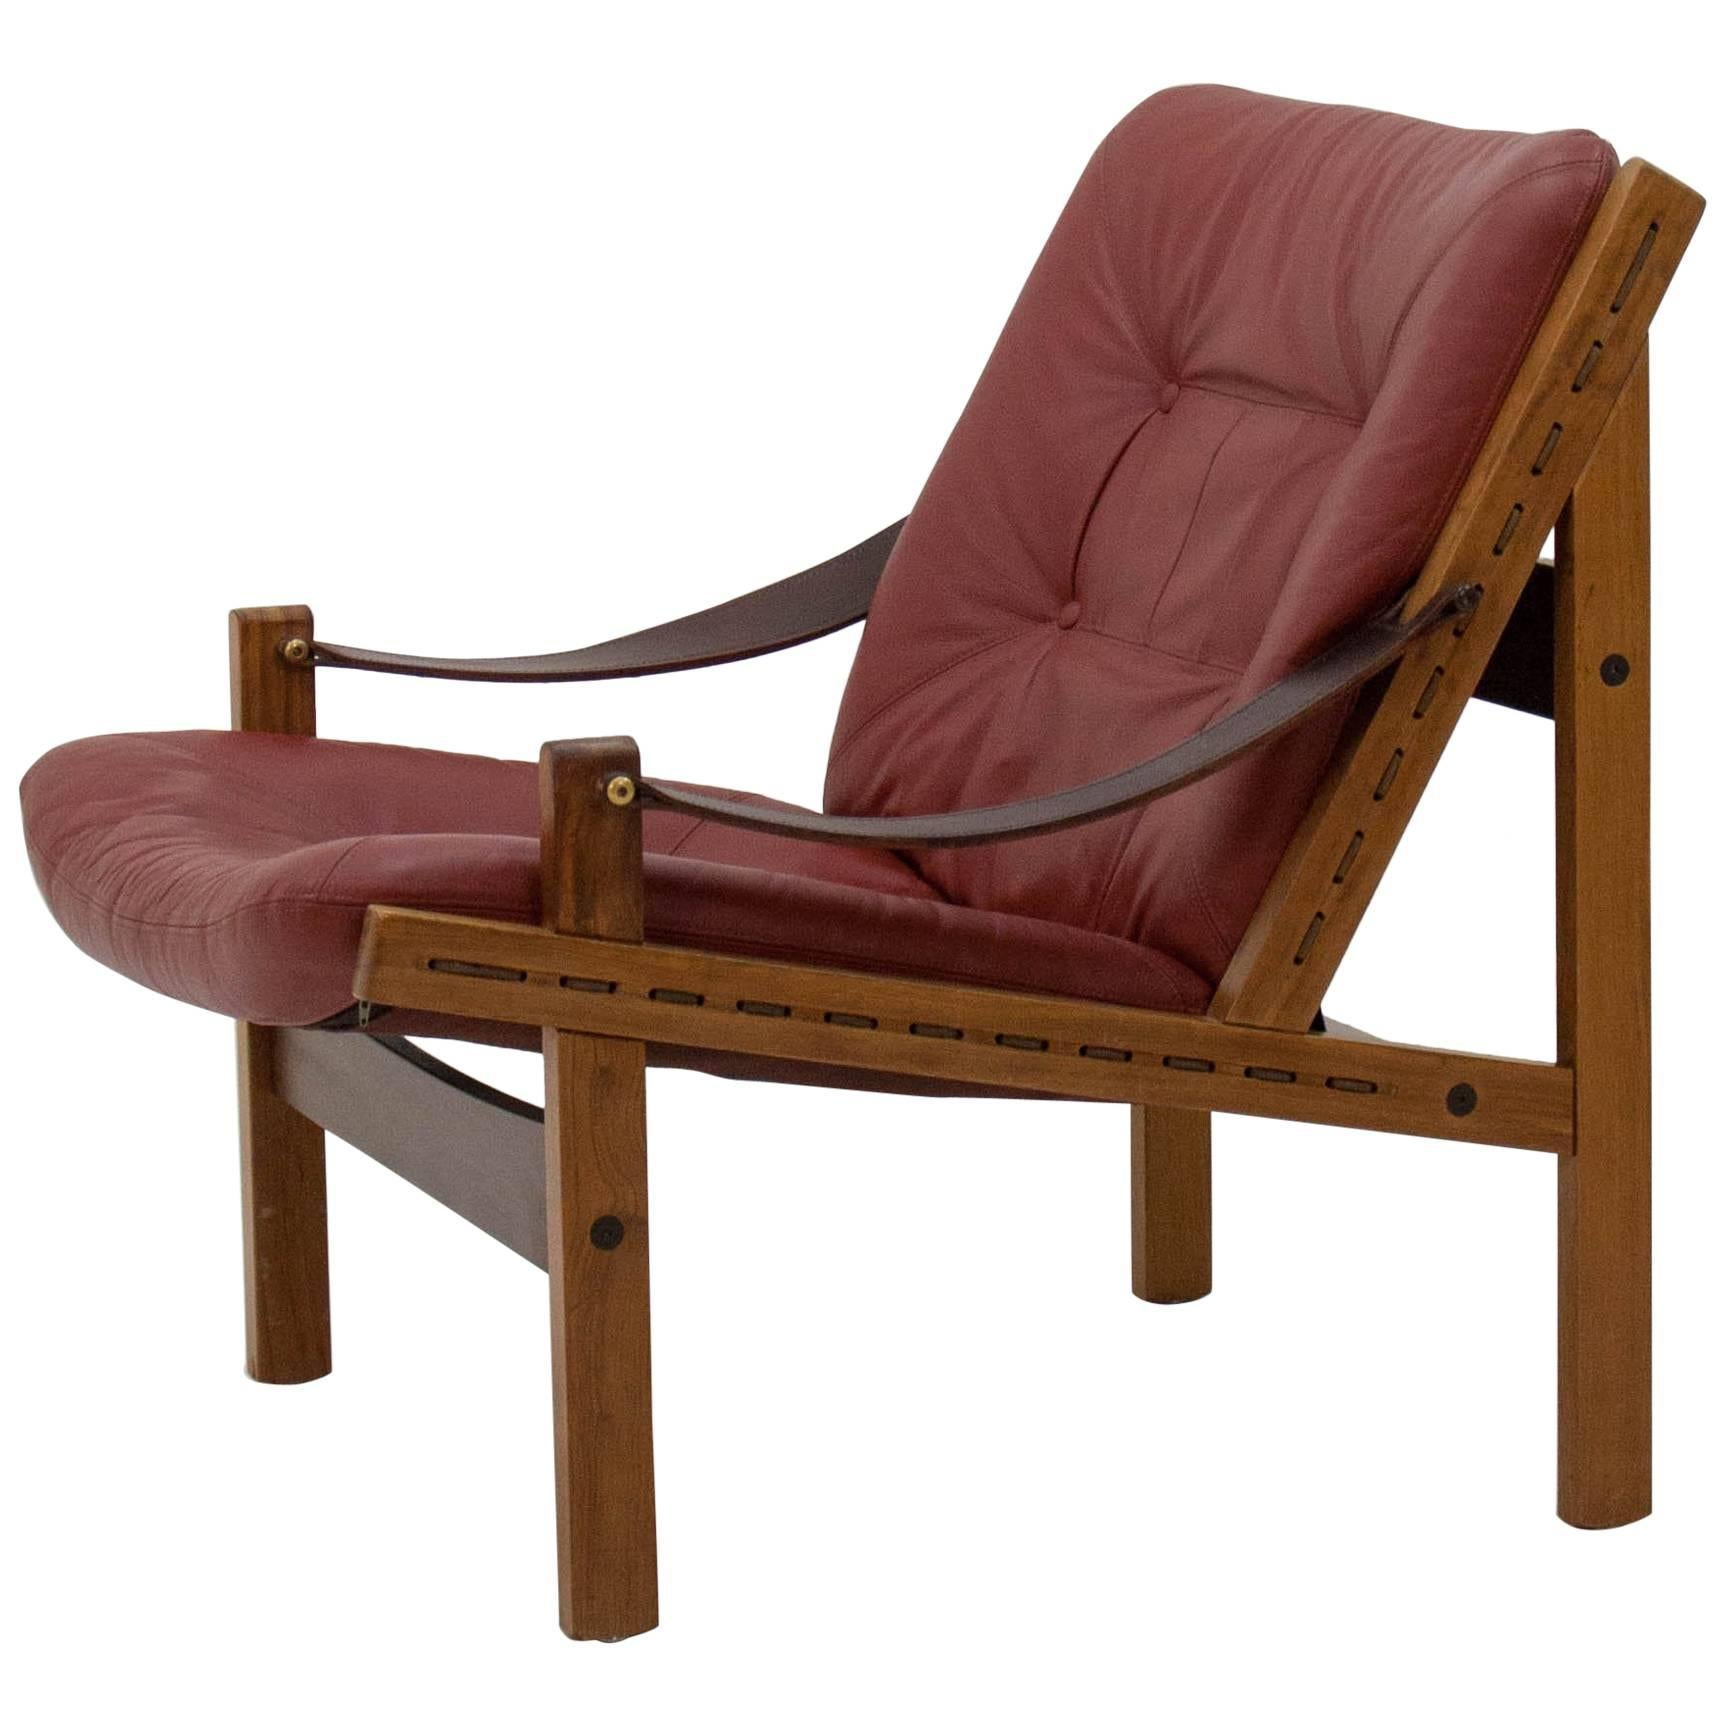 Norwegian Lounge Chairs - 155 For Sale at 1stdibs